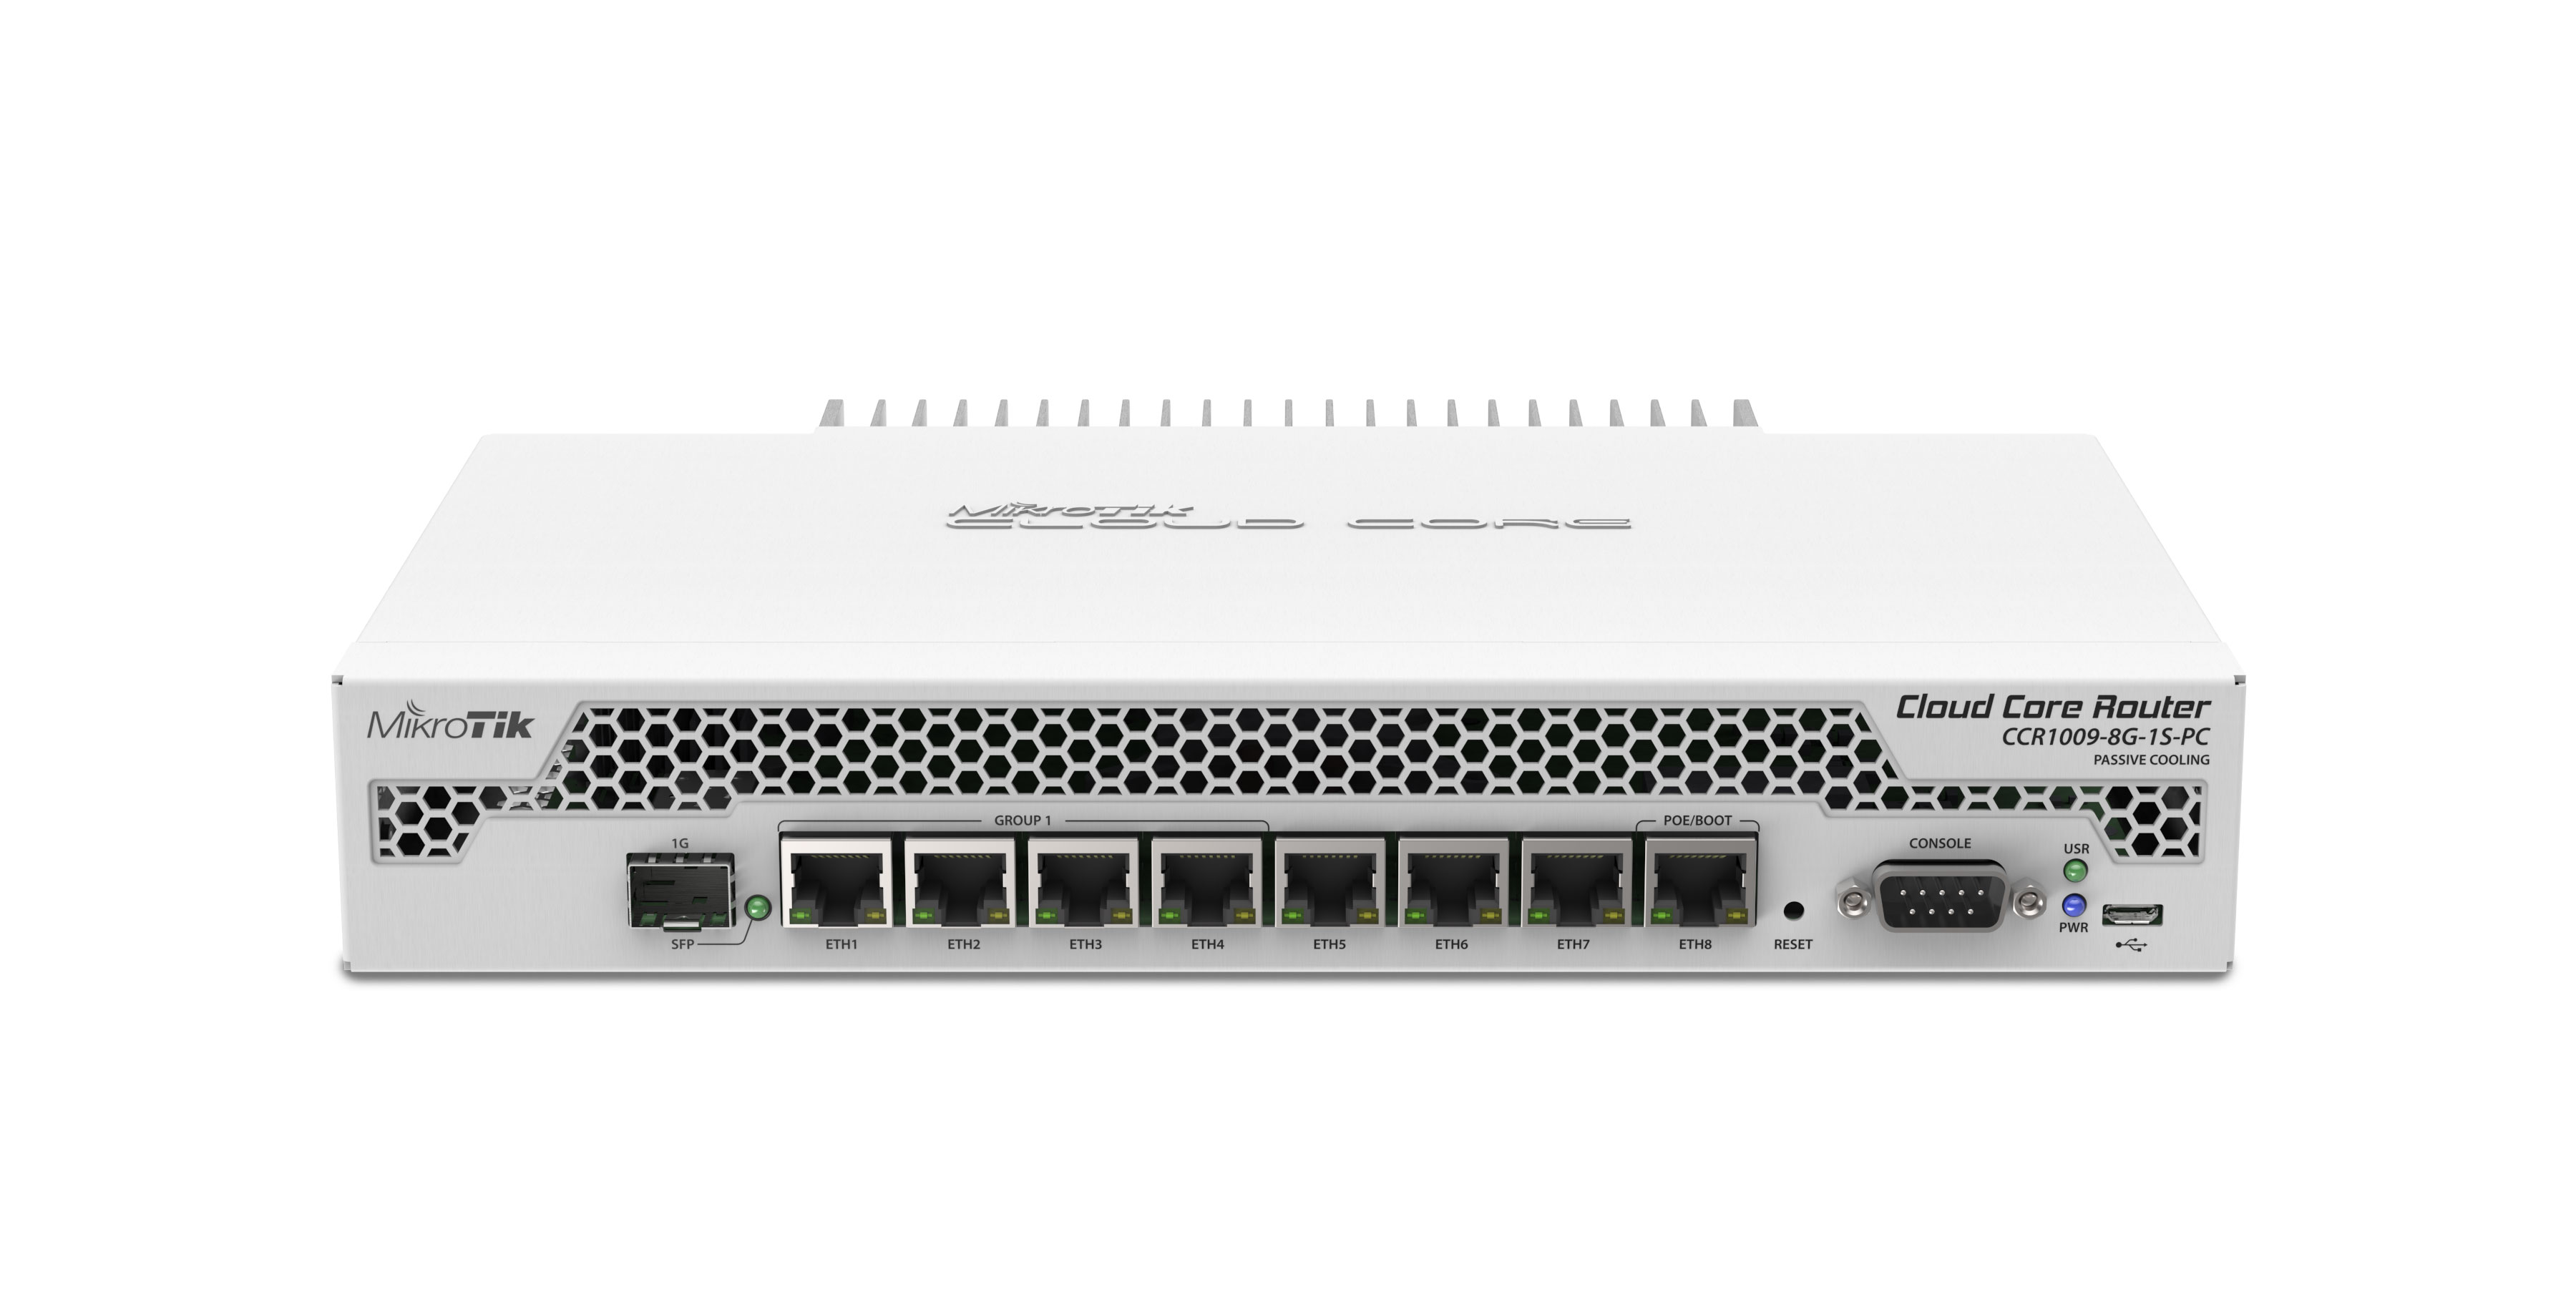 RouterBoard CCR1009-8G-1S-PC Cloud Core Router - Lisconet